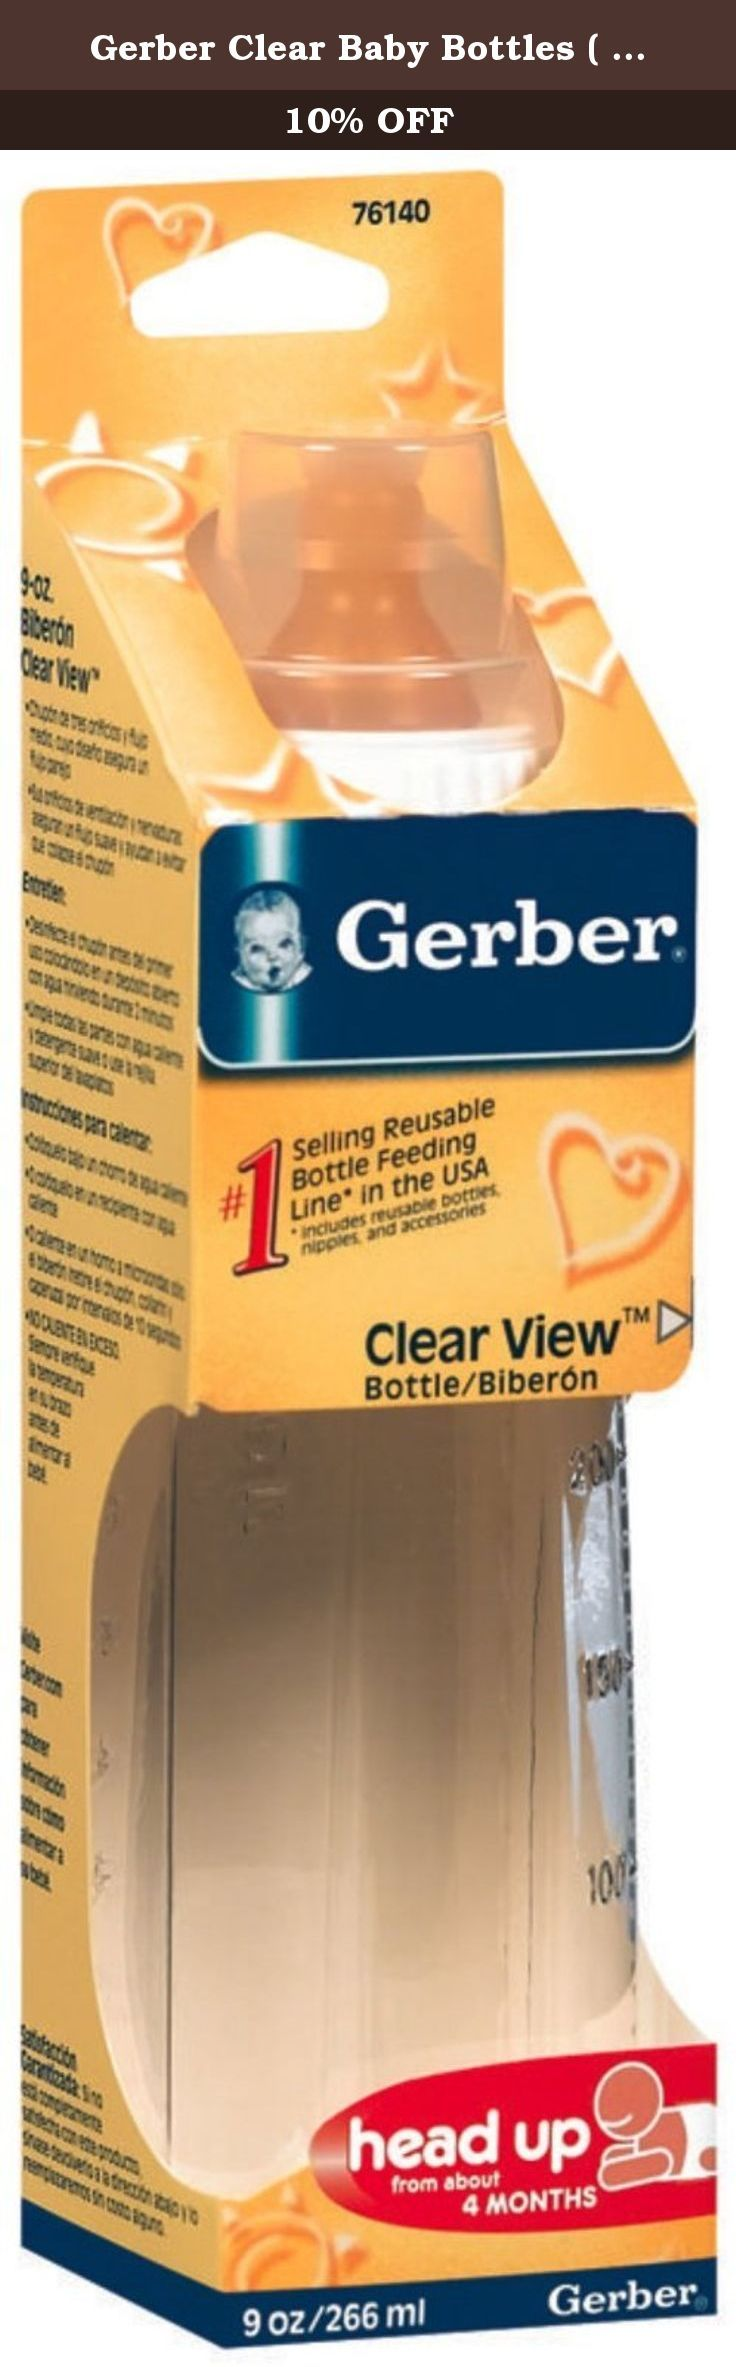 Gerber Clear Baby Bottles ( BOTTLE, NURSER, 9OZ CLEAR, BABY, LATEX ) 36 Each / Case. Gerber Clear Baby Bottles ( BOTTLE, NURSER, 9OZ CLEAR, BABY, LATEX ) 36 Each / Case. Clear view 9 oz (266 ml) nurser Ounces and milliliters molded on sides Shutterproof, sterilizer safeGerber Products products are nationally licensed for sale and carry a limited lifetime warranty. Please visit manufacturers website for further details.